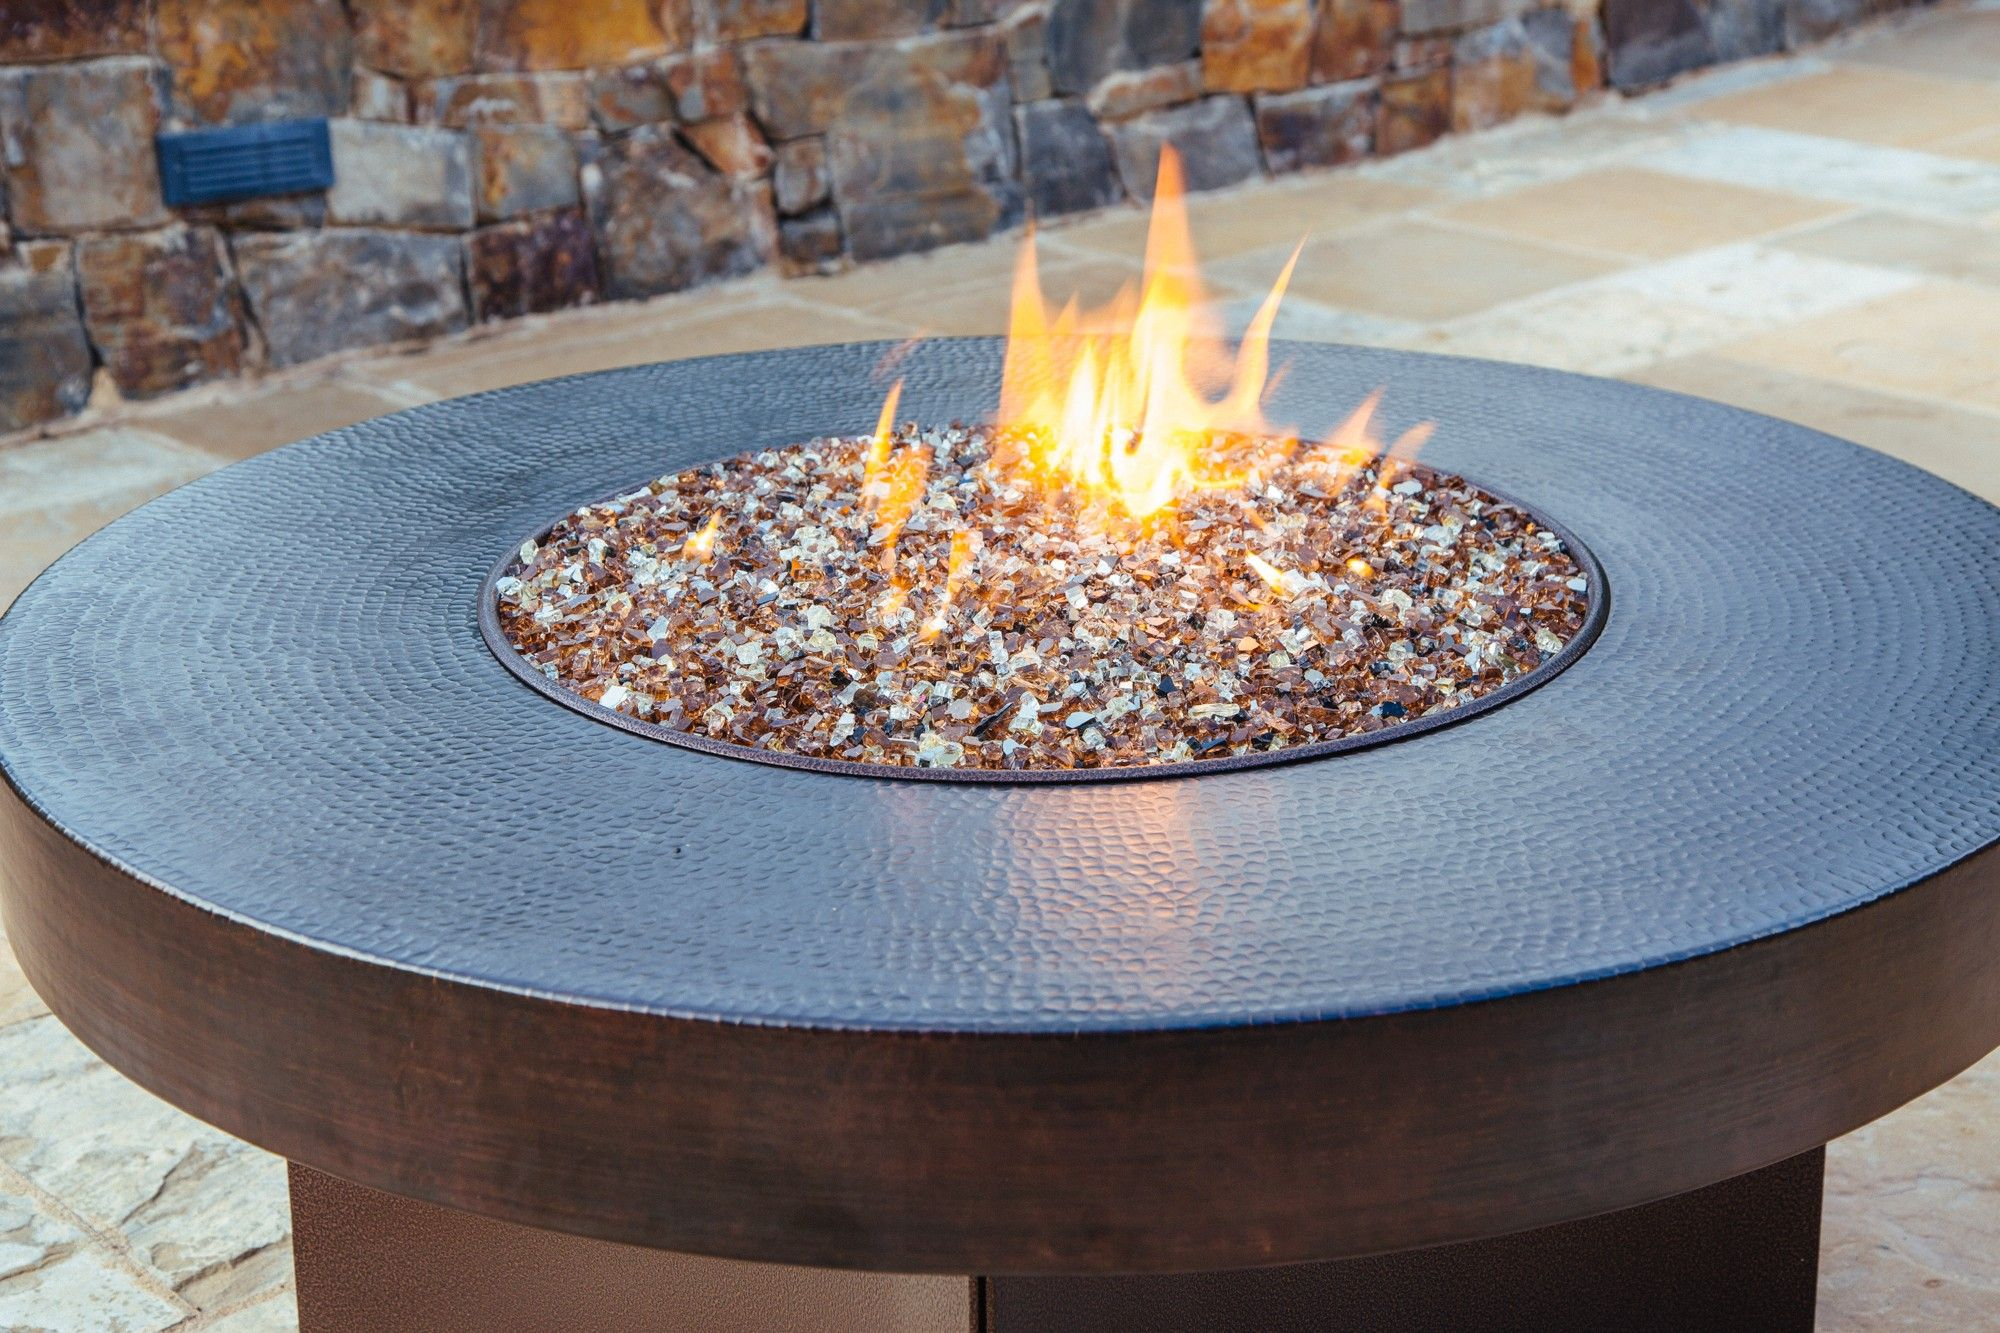 17 Best images about Outdoor Fire Pits on Pinterest   Fire pits, Propane fire  pit table and Copper